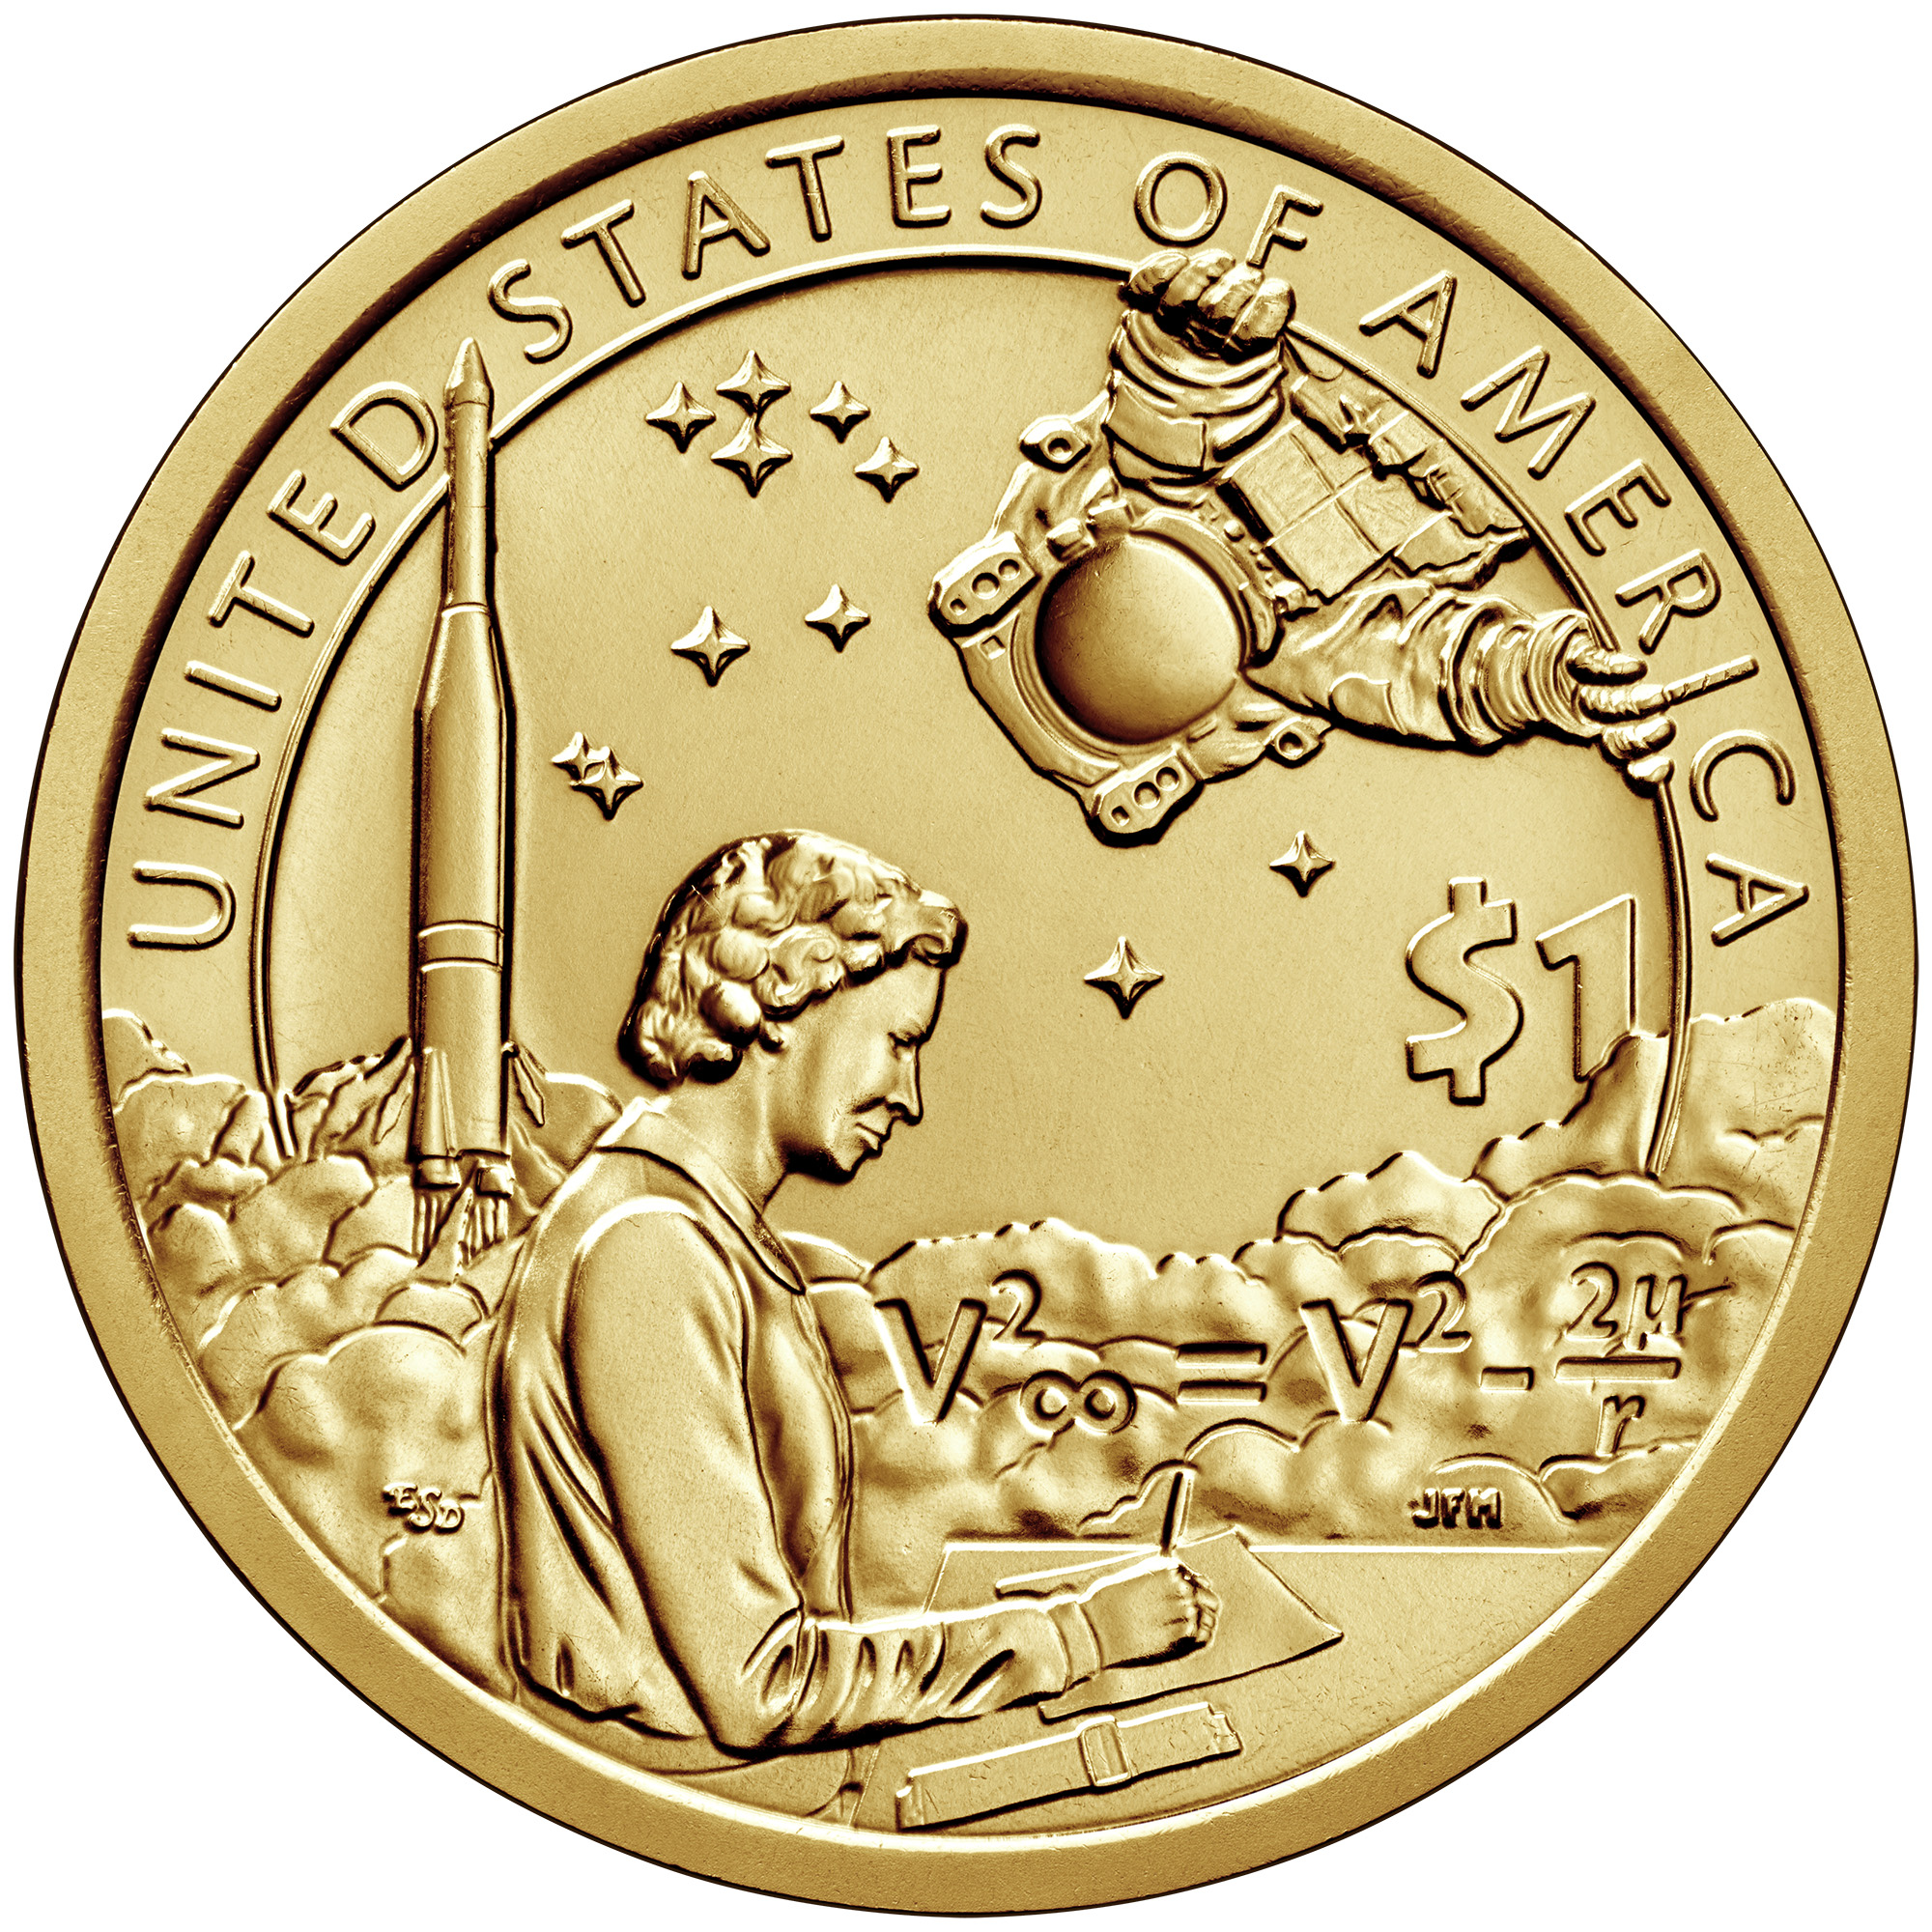 main image for United States Mint Unveils Design for 2019 Native American $1 Coin Reverse